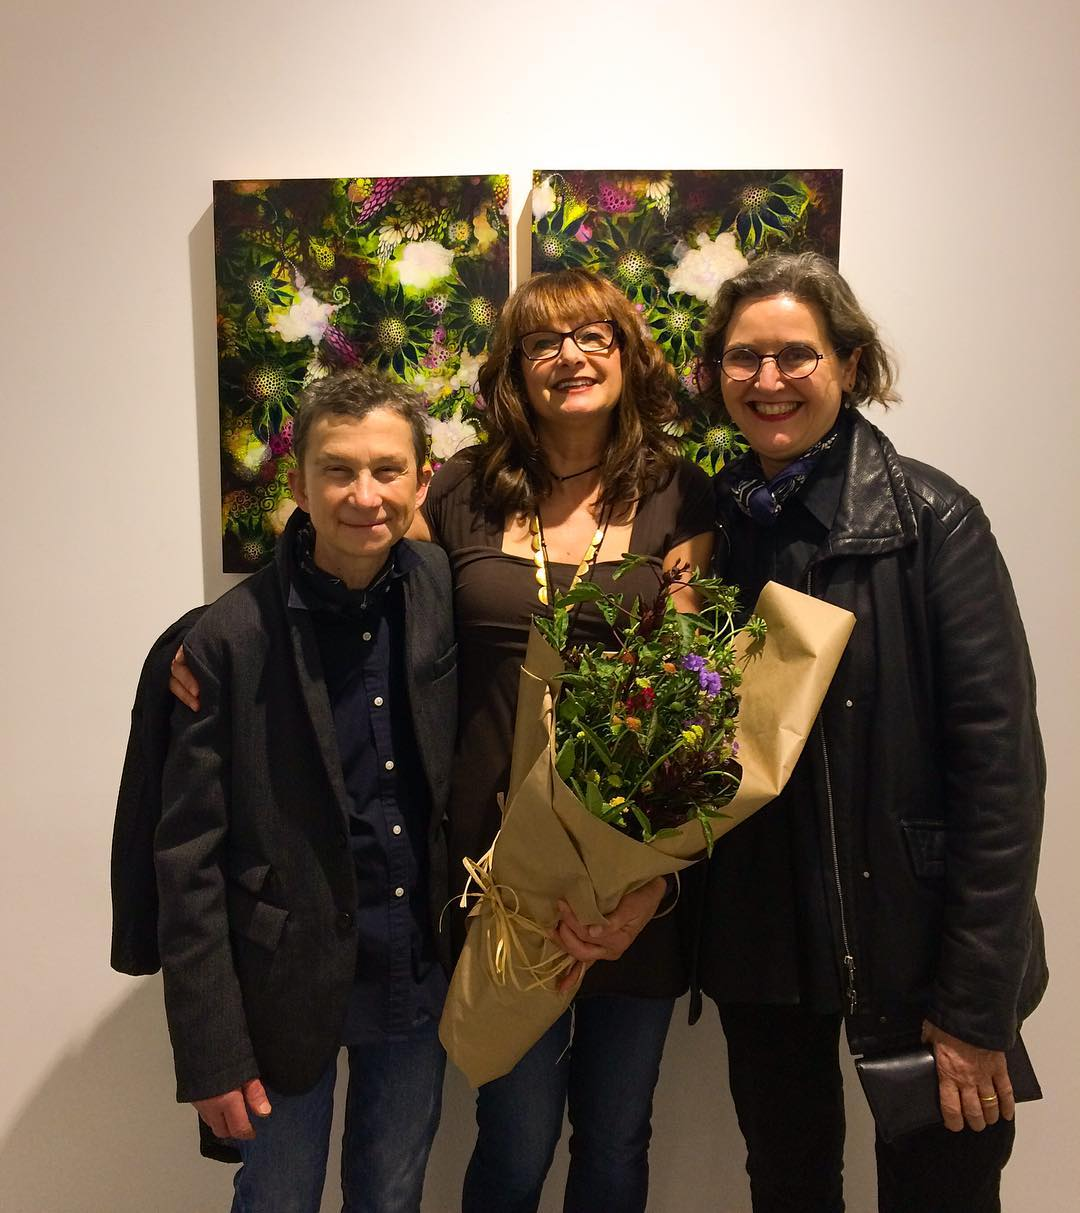 Wonderful opening last night patriciasweetowgallery and loved seeing so manyhellip